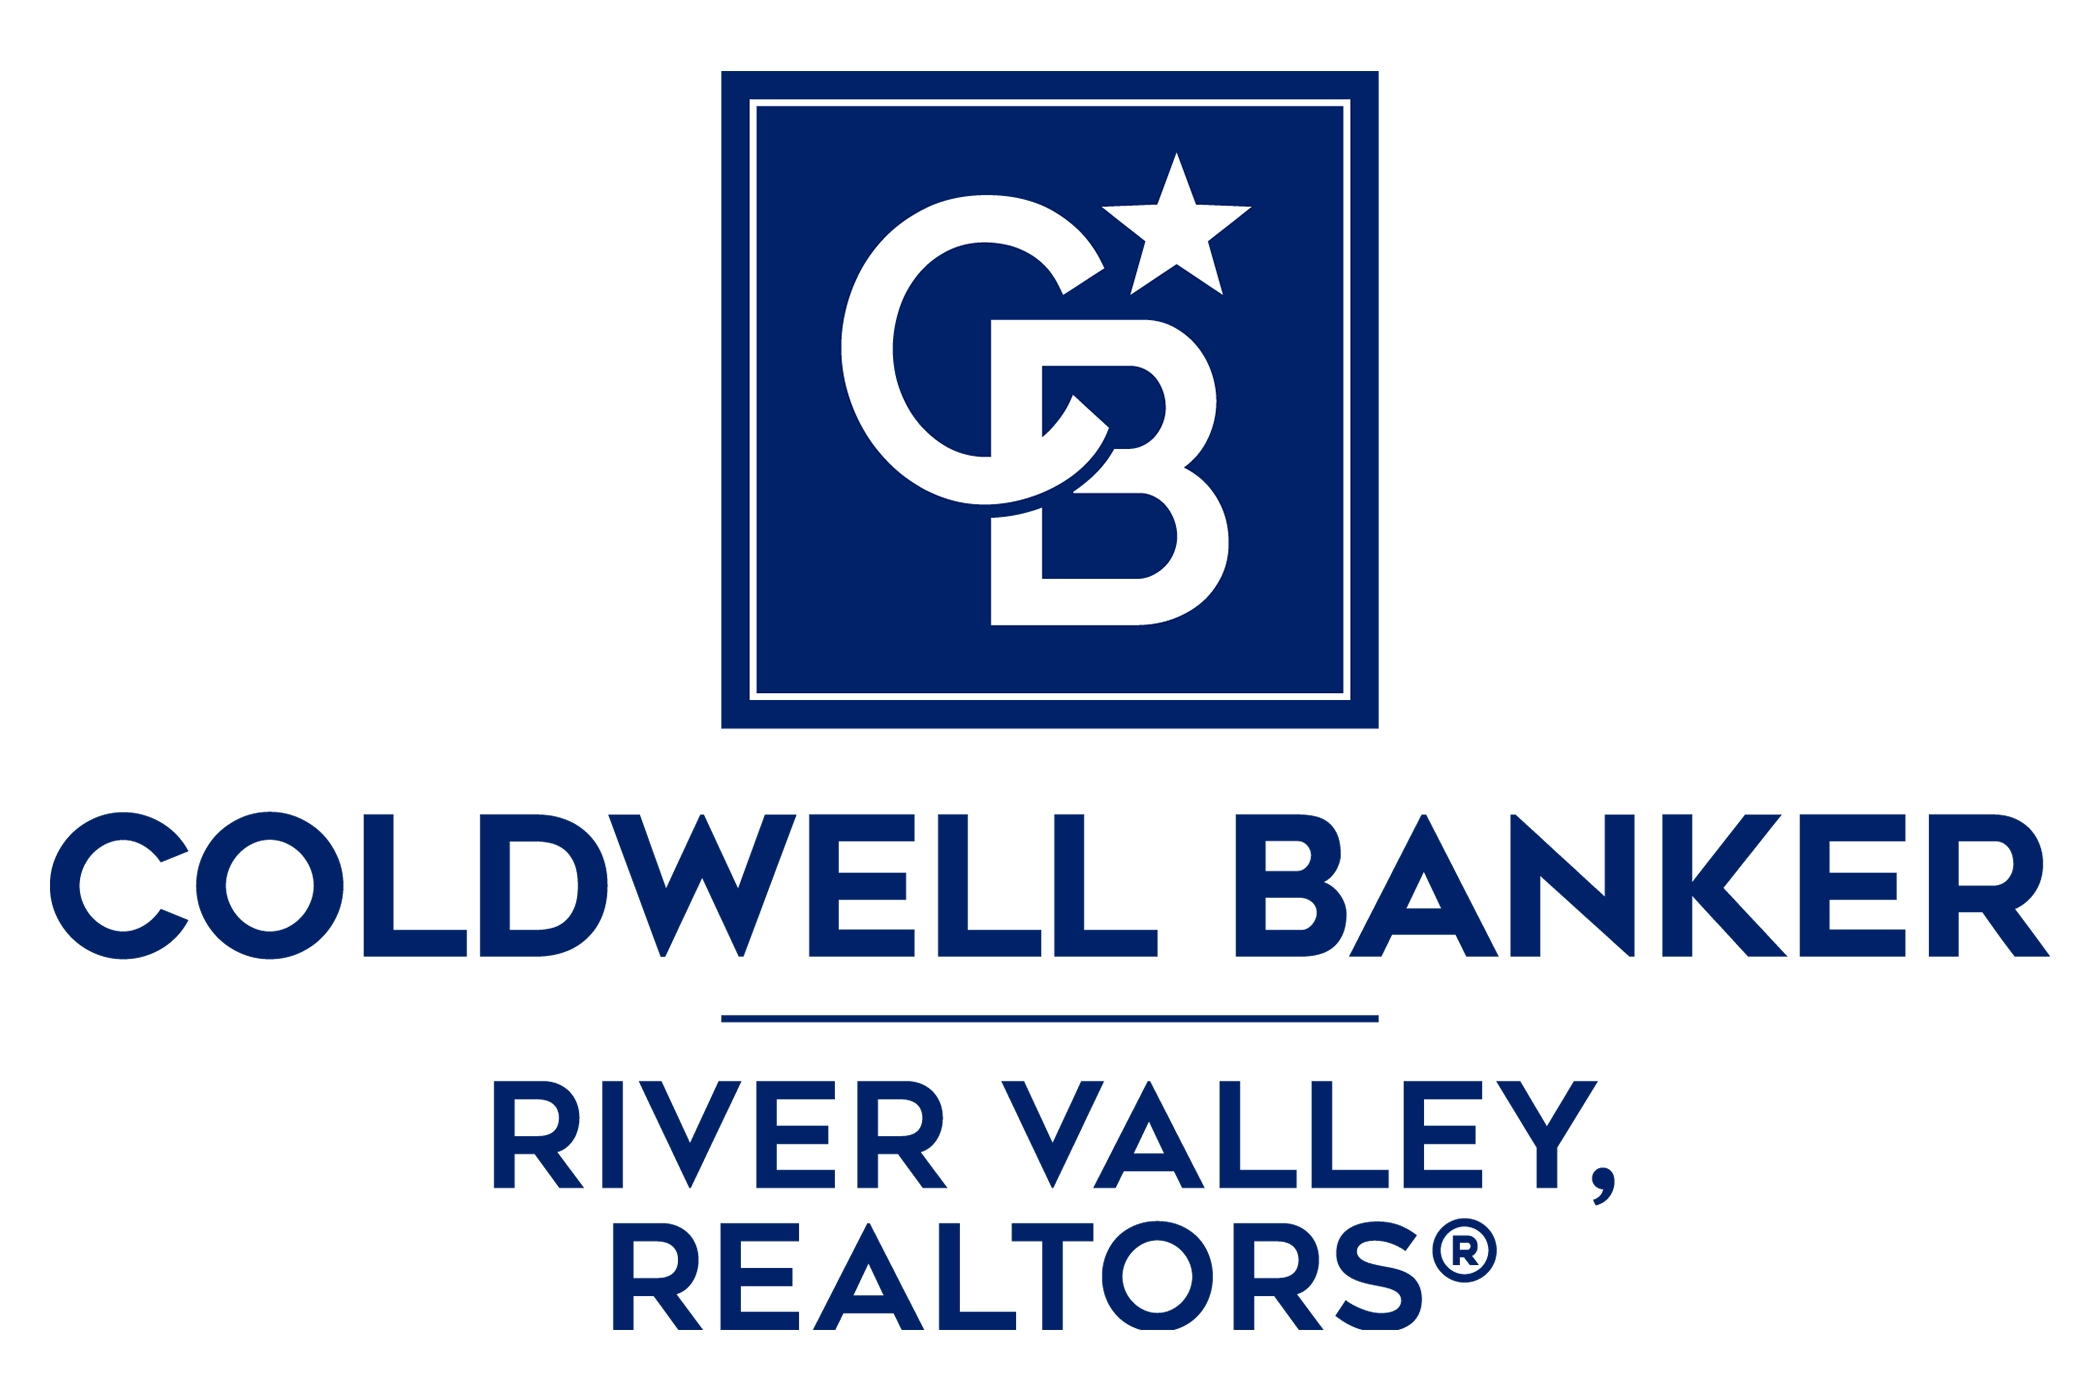 Frank Hough - Coldwell Banker River Valley Realtors